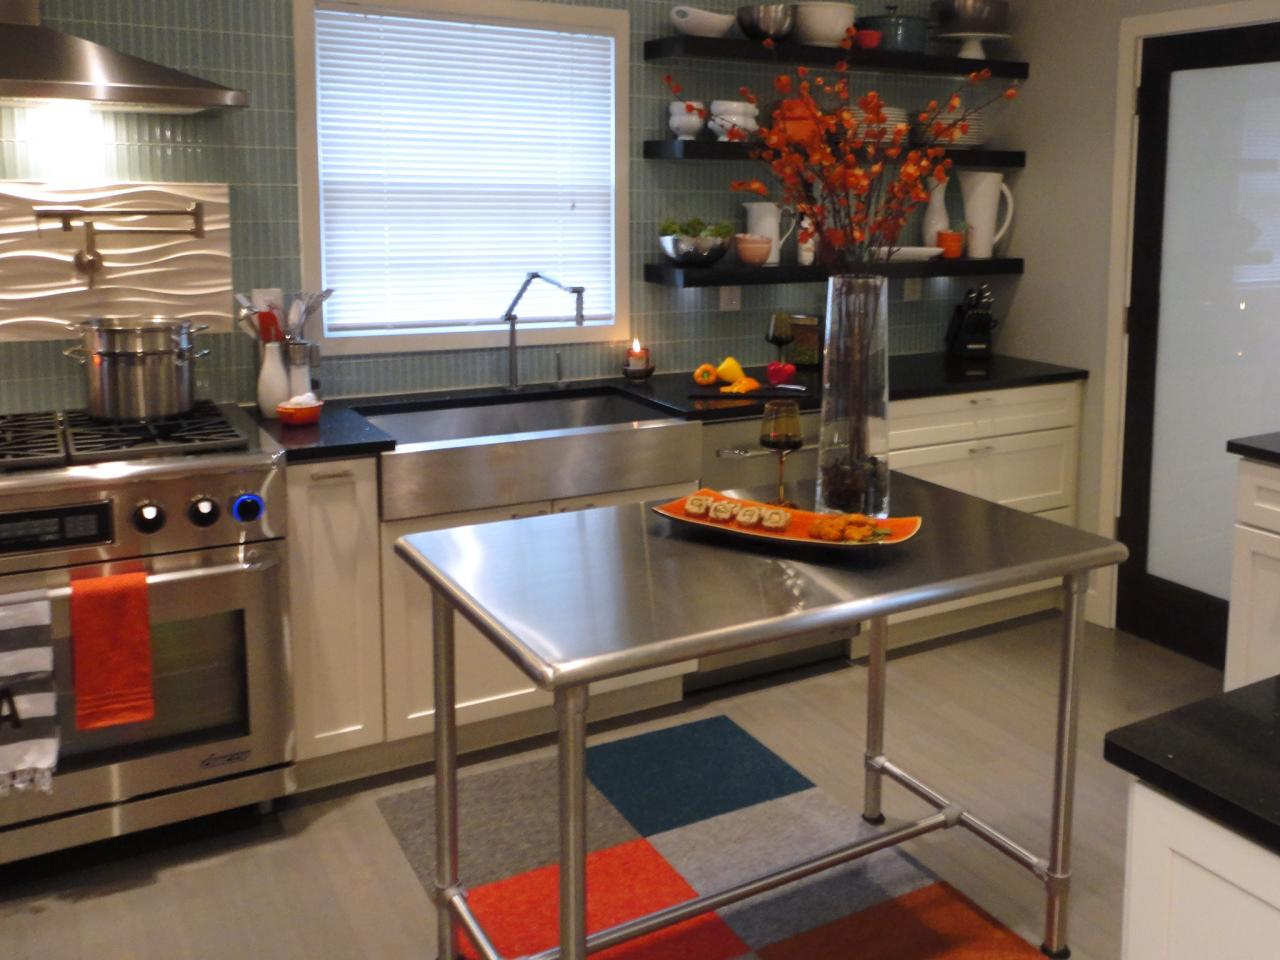 Stainless Steel Kitchen Islands | HGTV